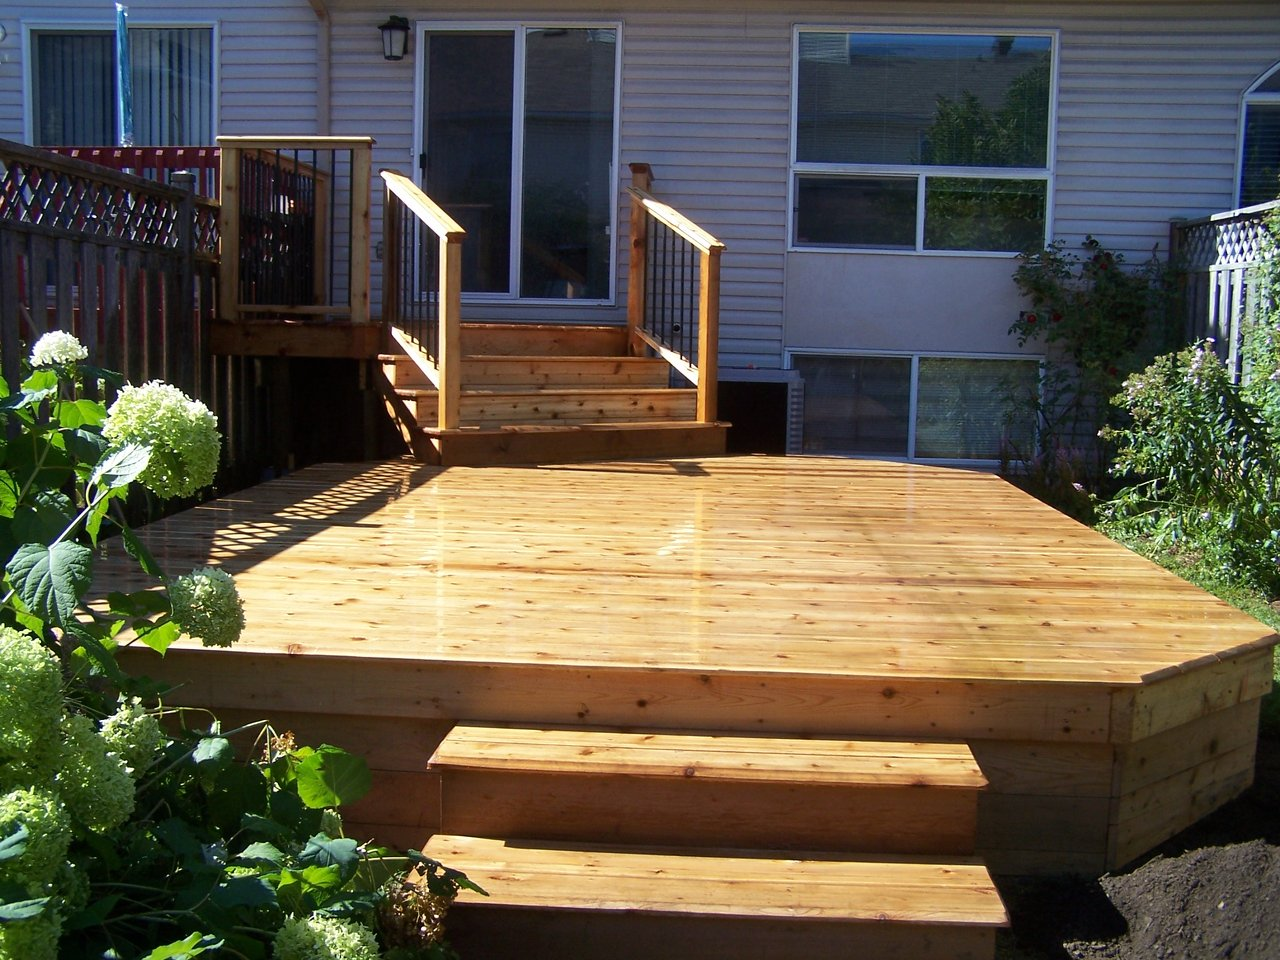 Townhouse Cedar Deck